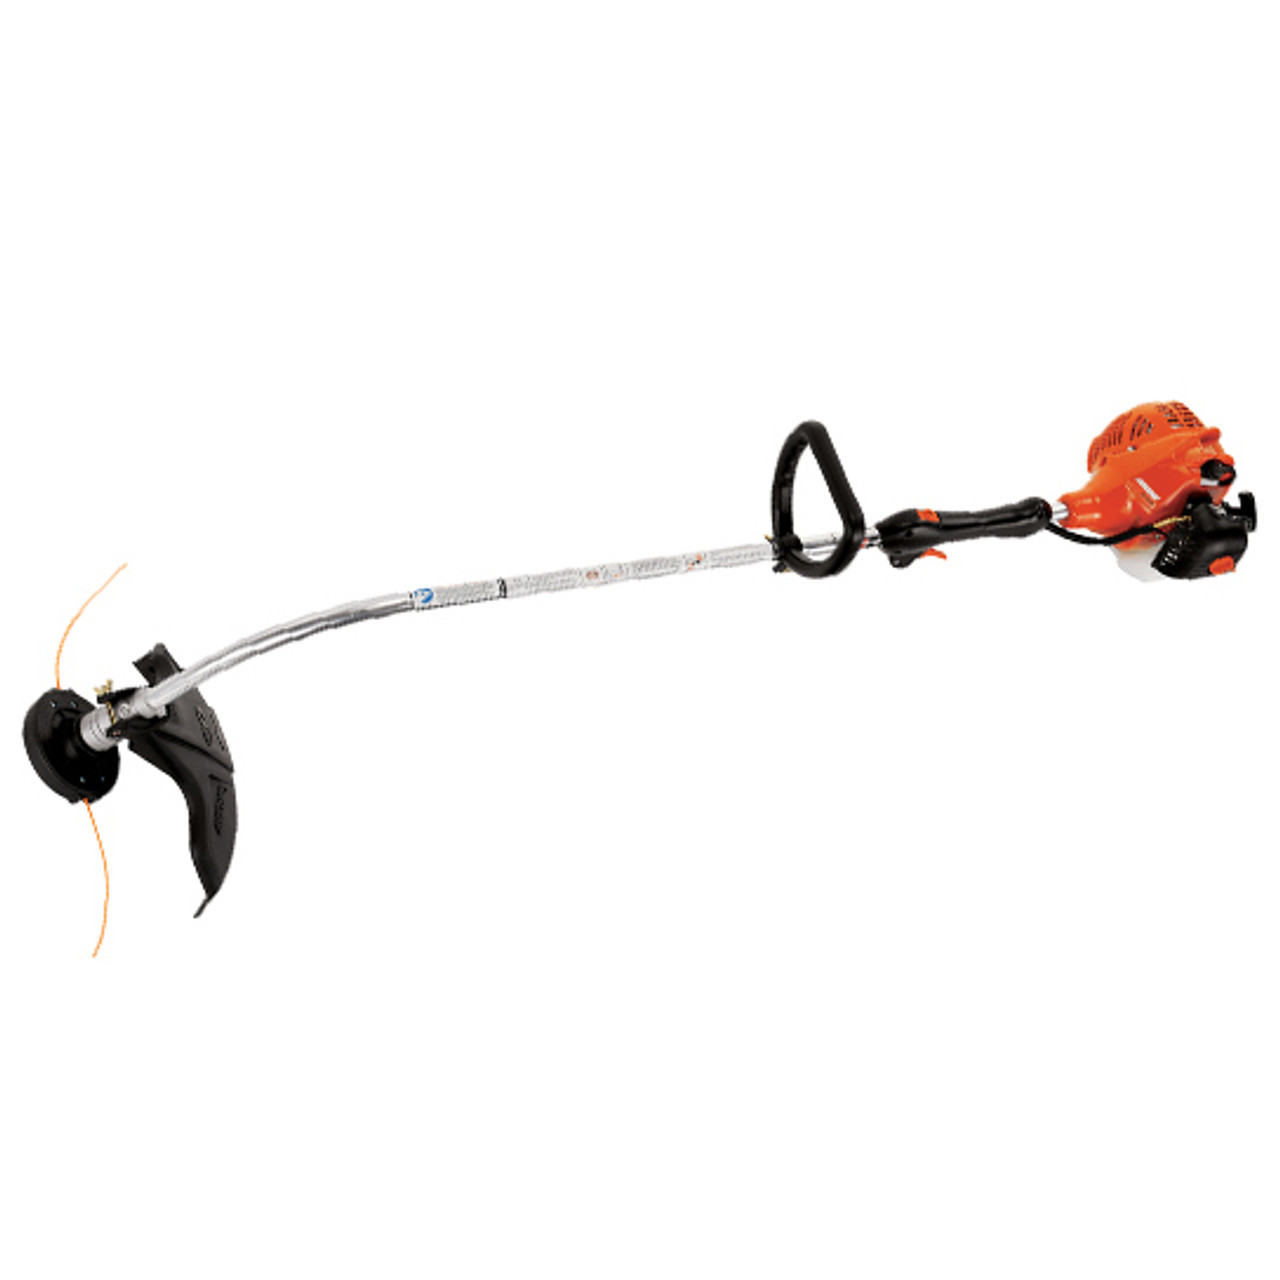 ECHO GT-225i 21.2cc 2-Stroke Curved Shaft String Trimmer w/ i-75 Easy Start Image